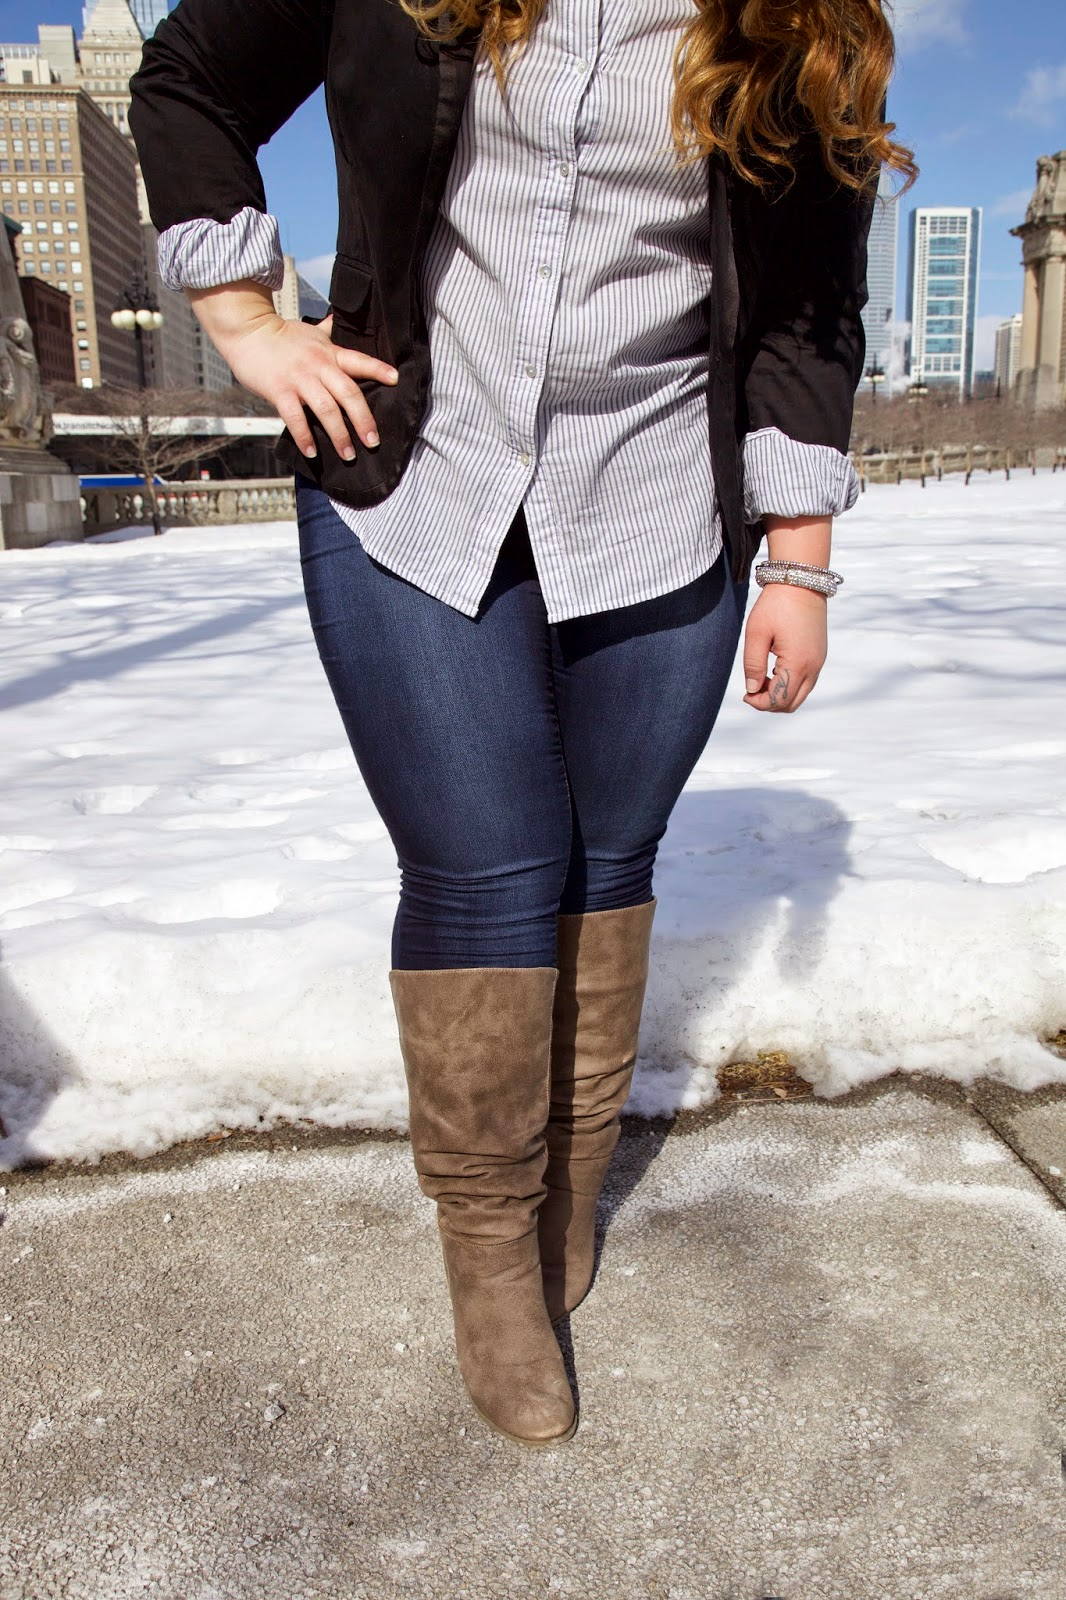 Stylzoo, amazon, chicago, fashion blogger, plus size fashion blogger, natalie craig, natalie in the city, blazer, skinny jeans, comfortable jeans, wide calf boots, plus size blazer, fatshion, thick girls, curvy women, full figured, jeggings, business casual style